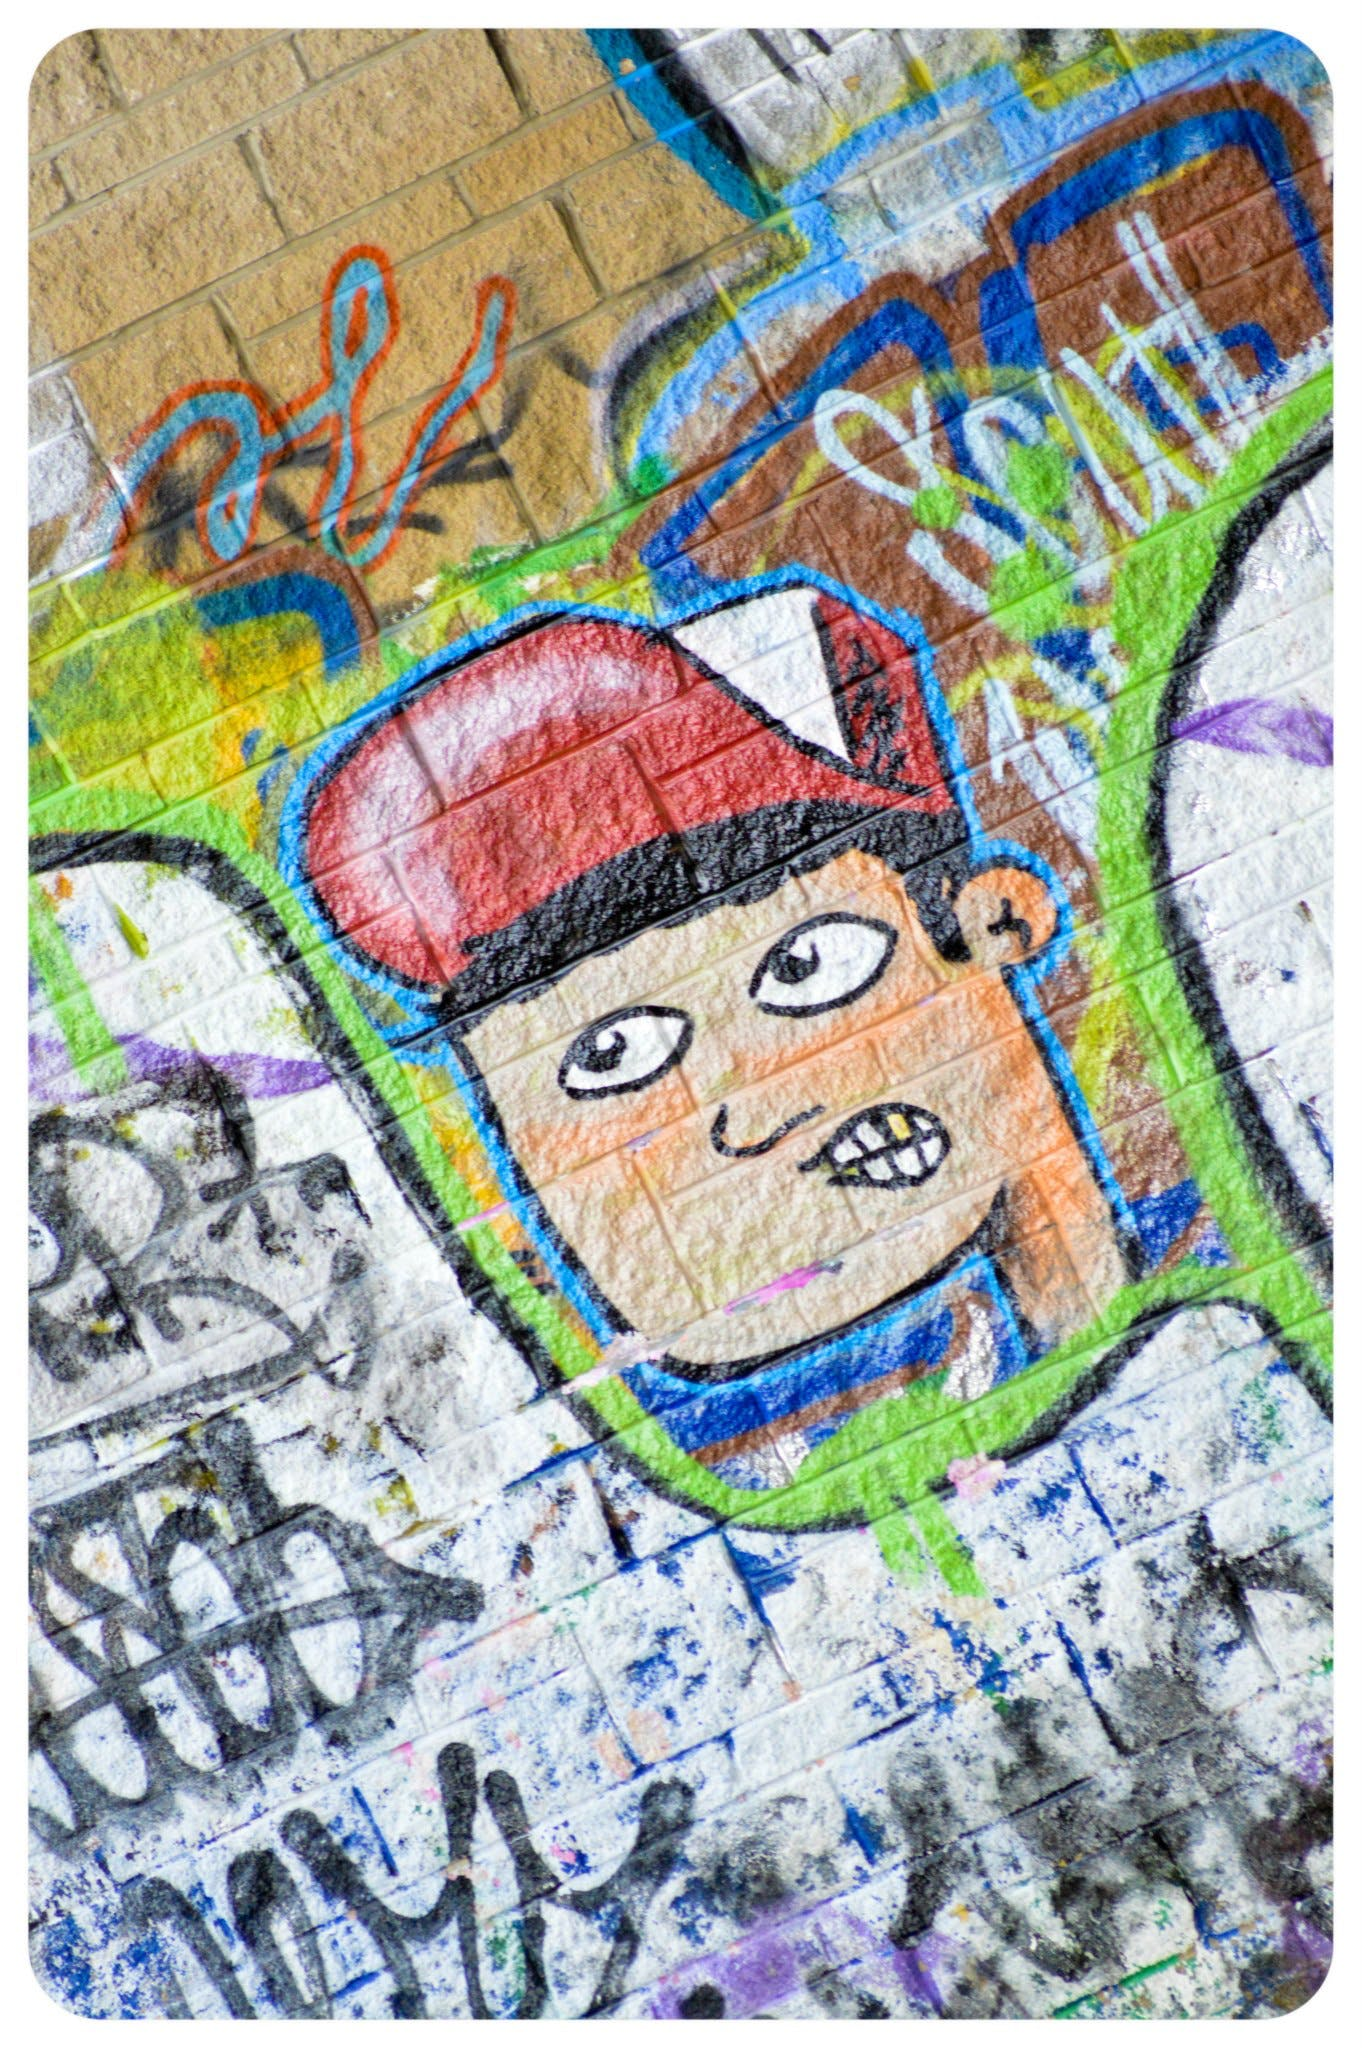 Free stock photo of face, graffiti